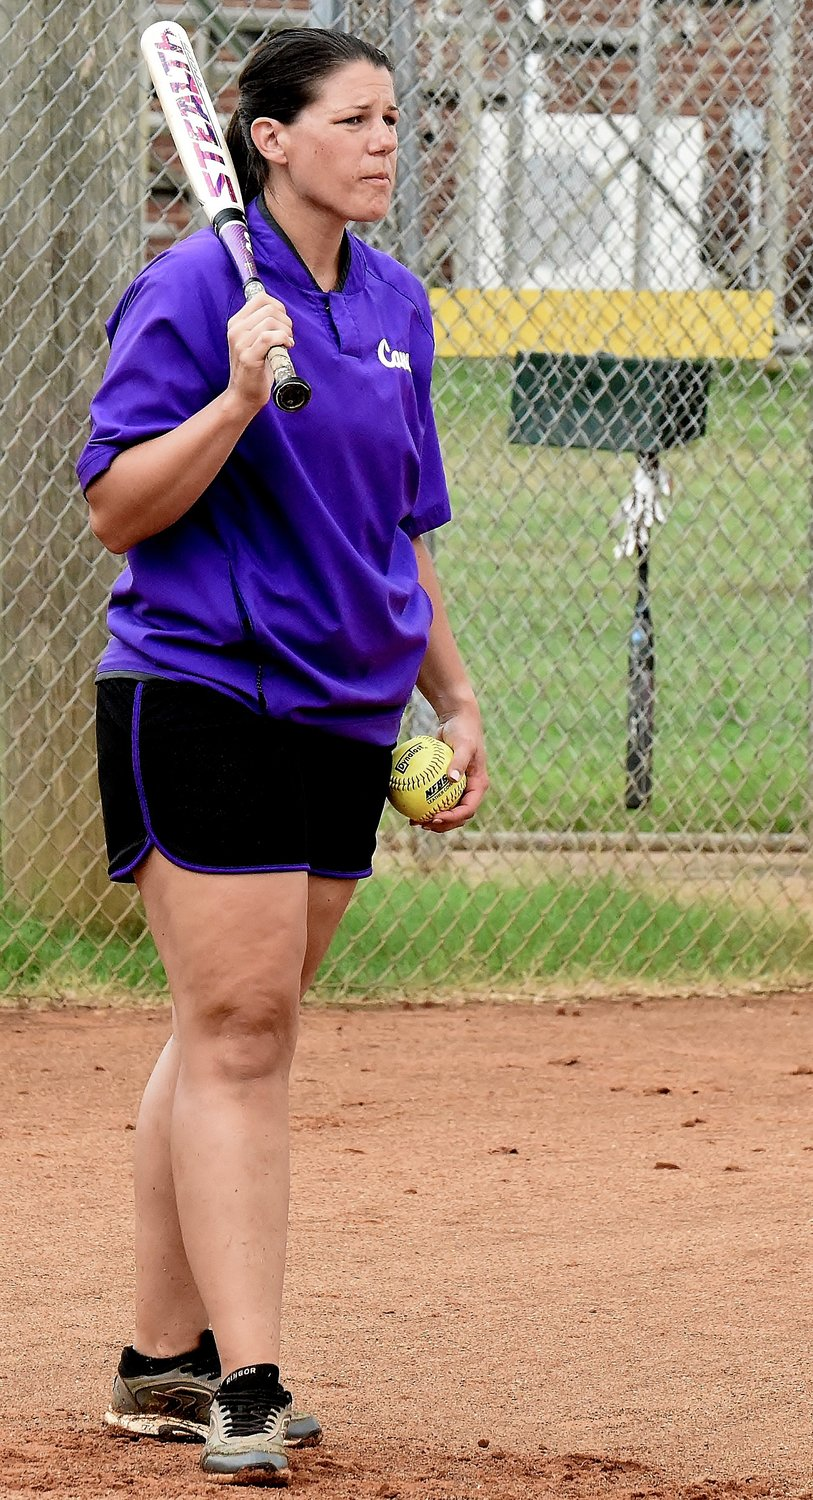 Cartersville High head softball coach Shannon Suarez prepares to hit the ball during a defensive drill as part of a workout Thursday.